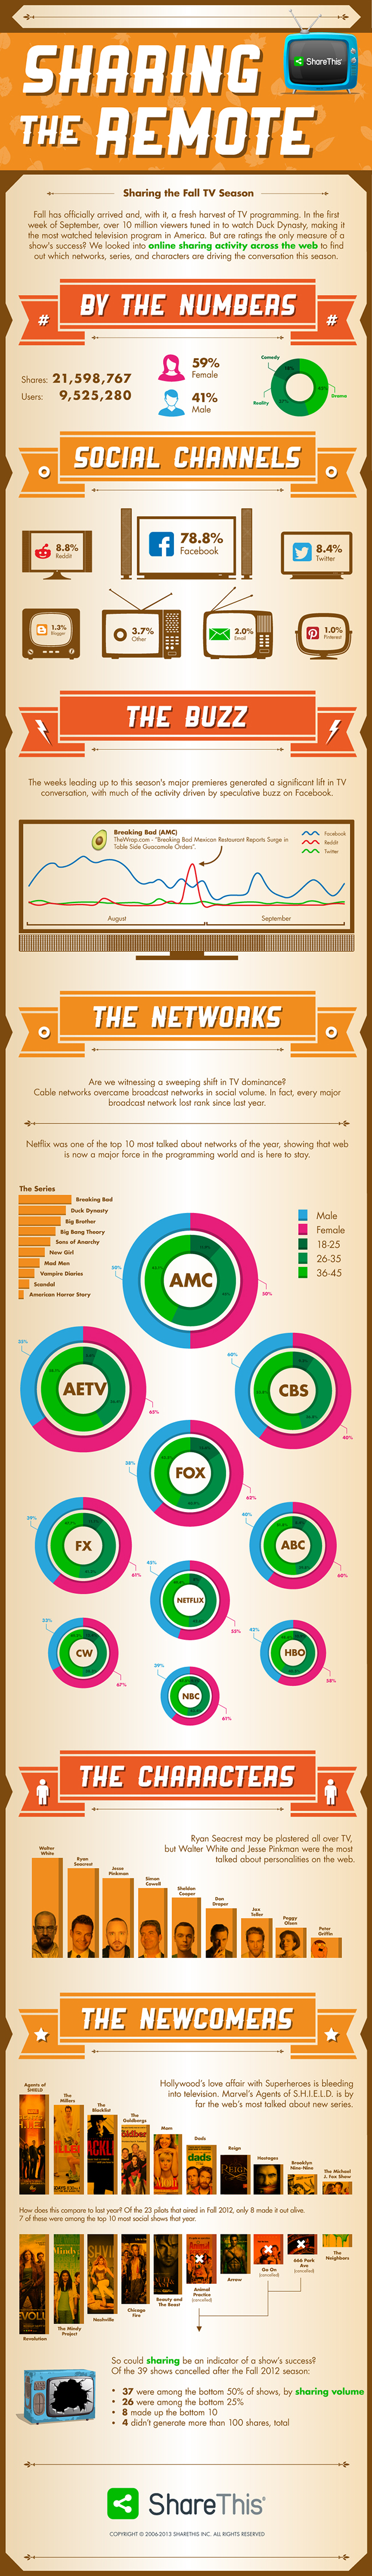 Our newest infographic on Fall TV sharing trends! http